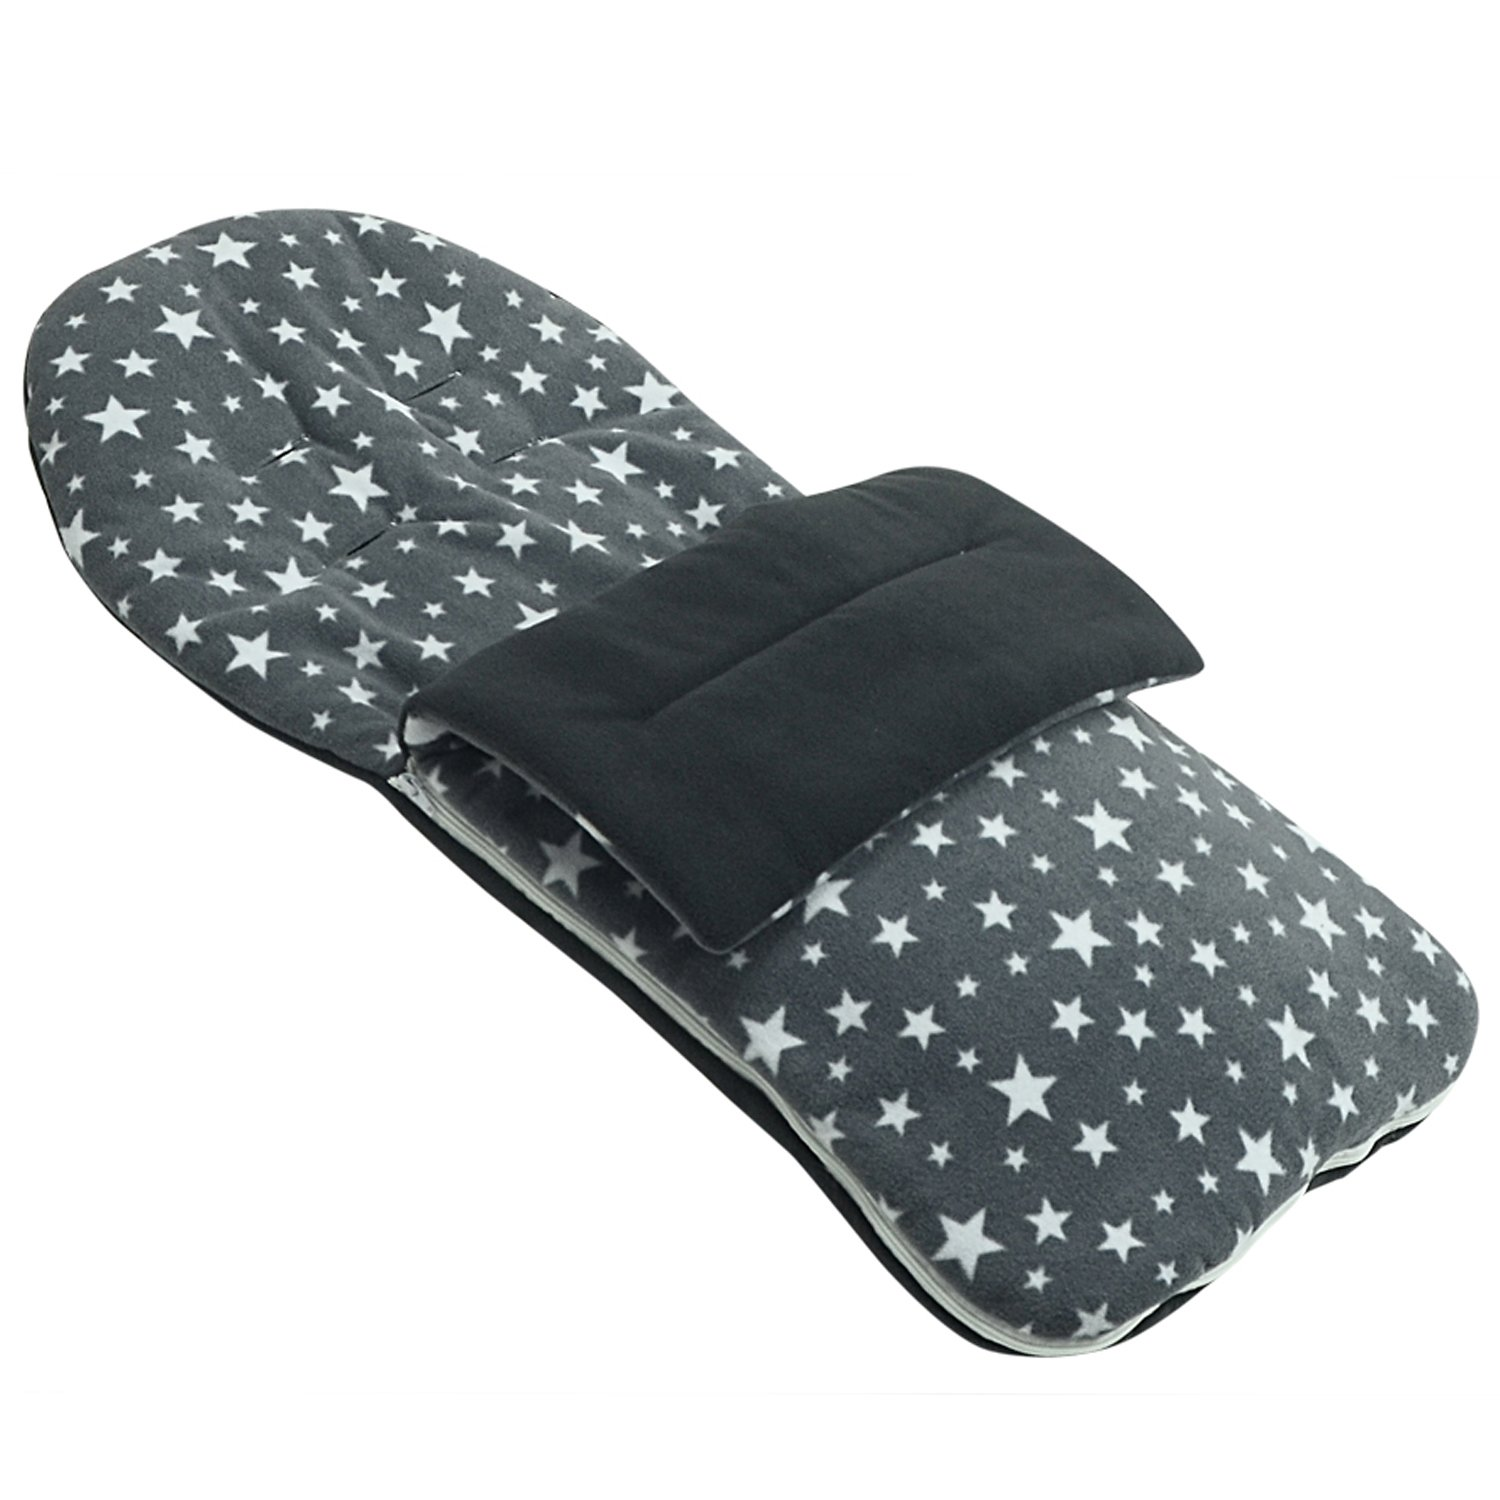 Fleece Footmuff Compatible with Concord Stroller Buggy Pram - Grey Star For-Your-Little-One